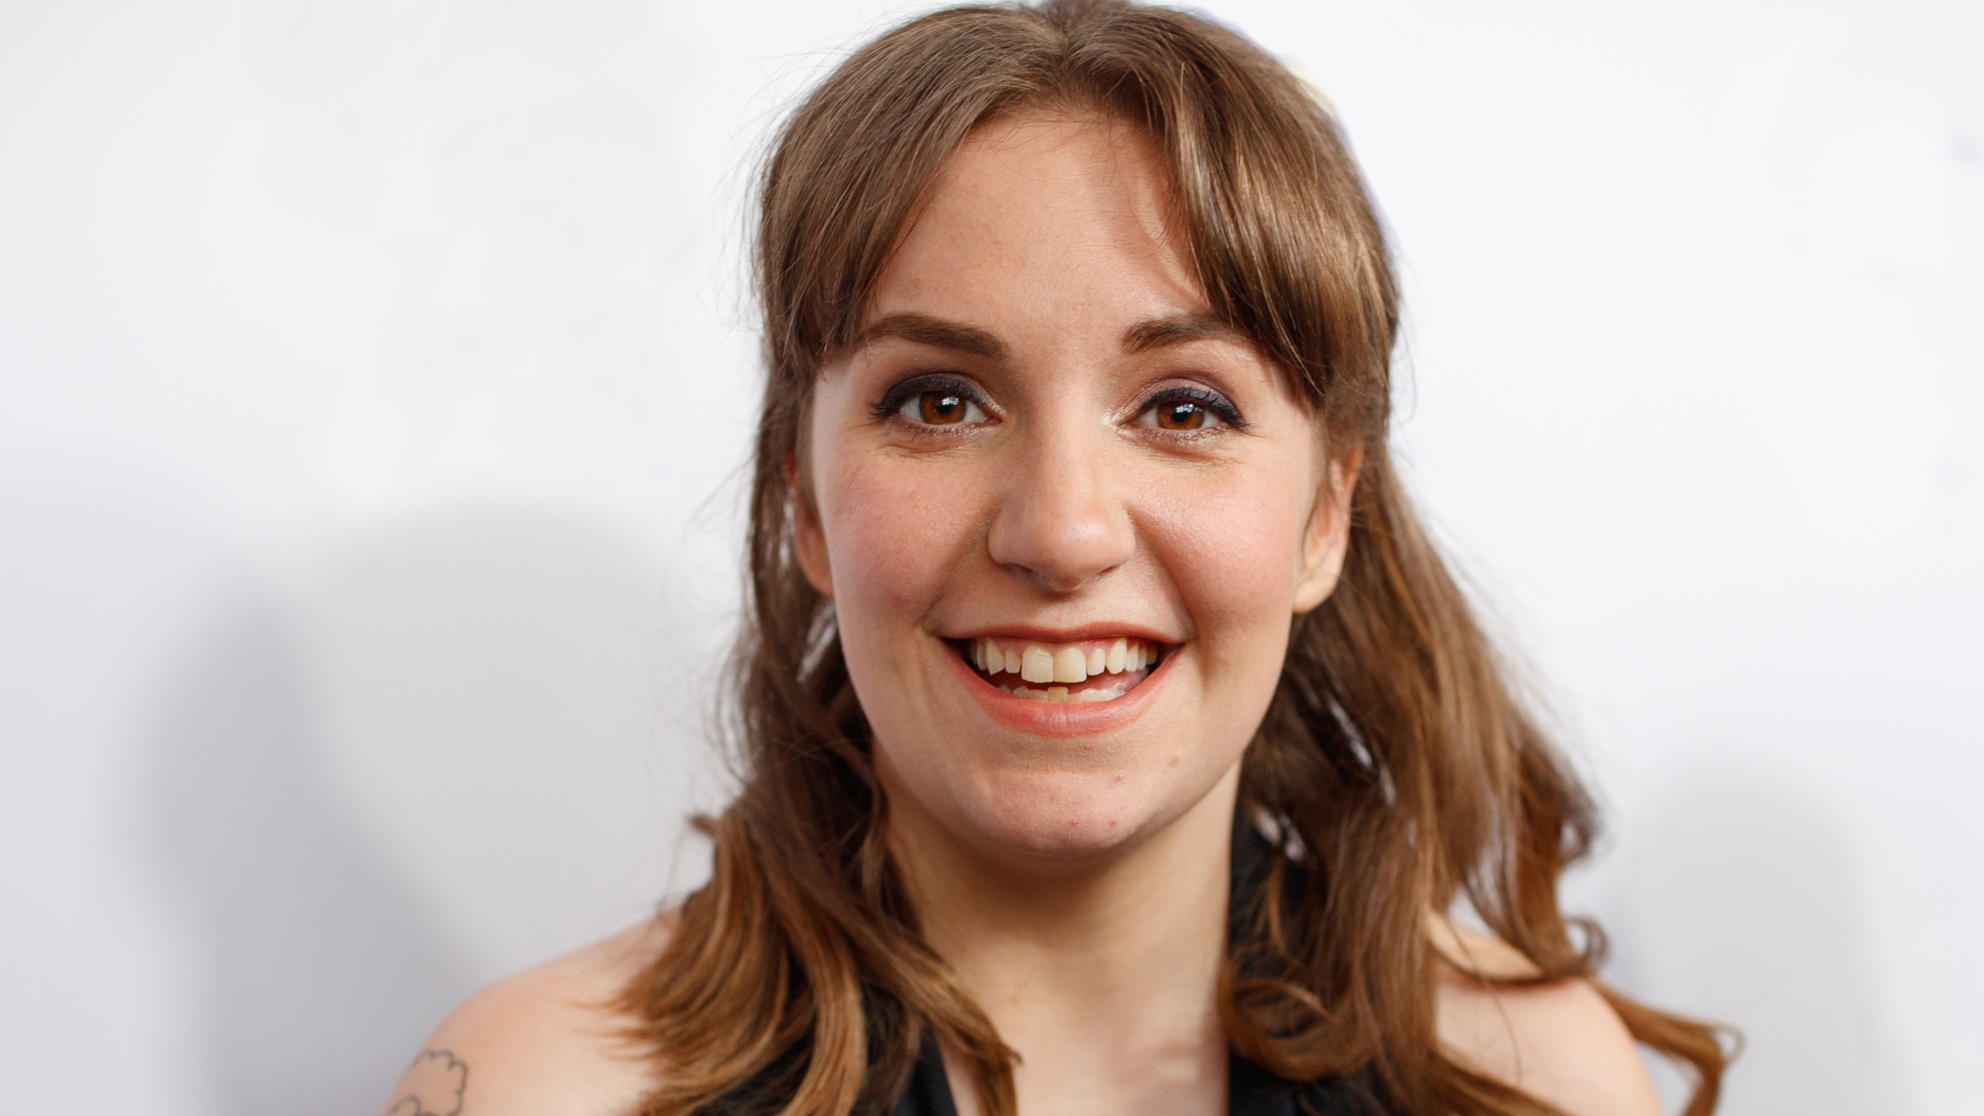 Lena Dunham Doesn't Understand Why She Is Being Criticized for Losing Weight: 'You Just Can't Win'